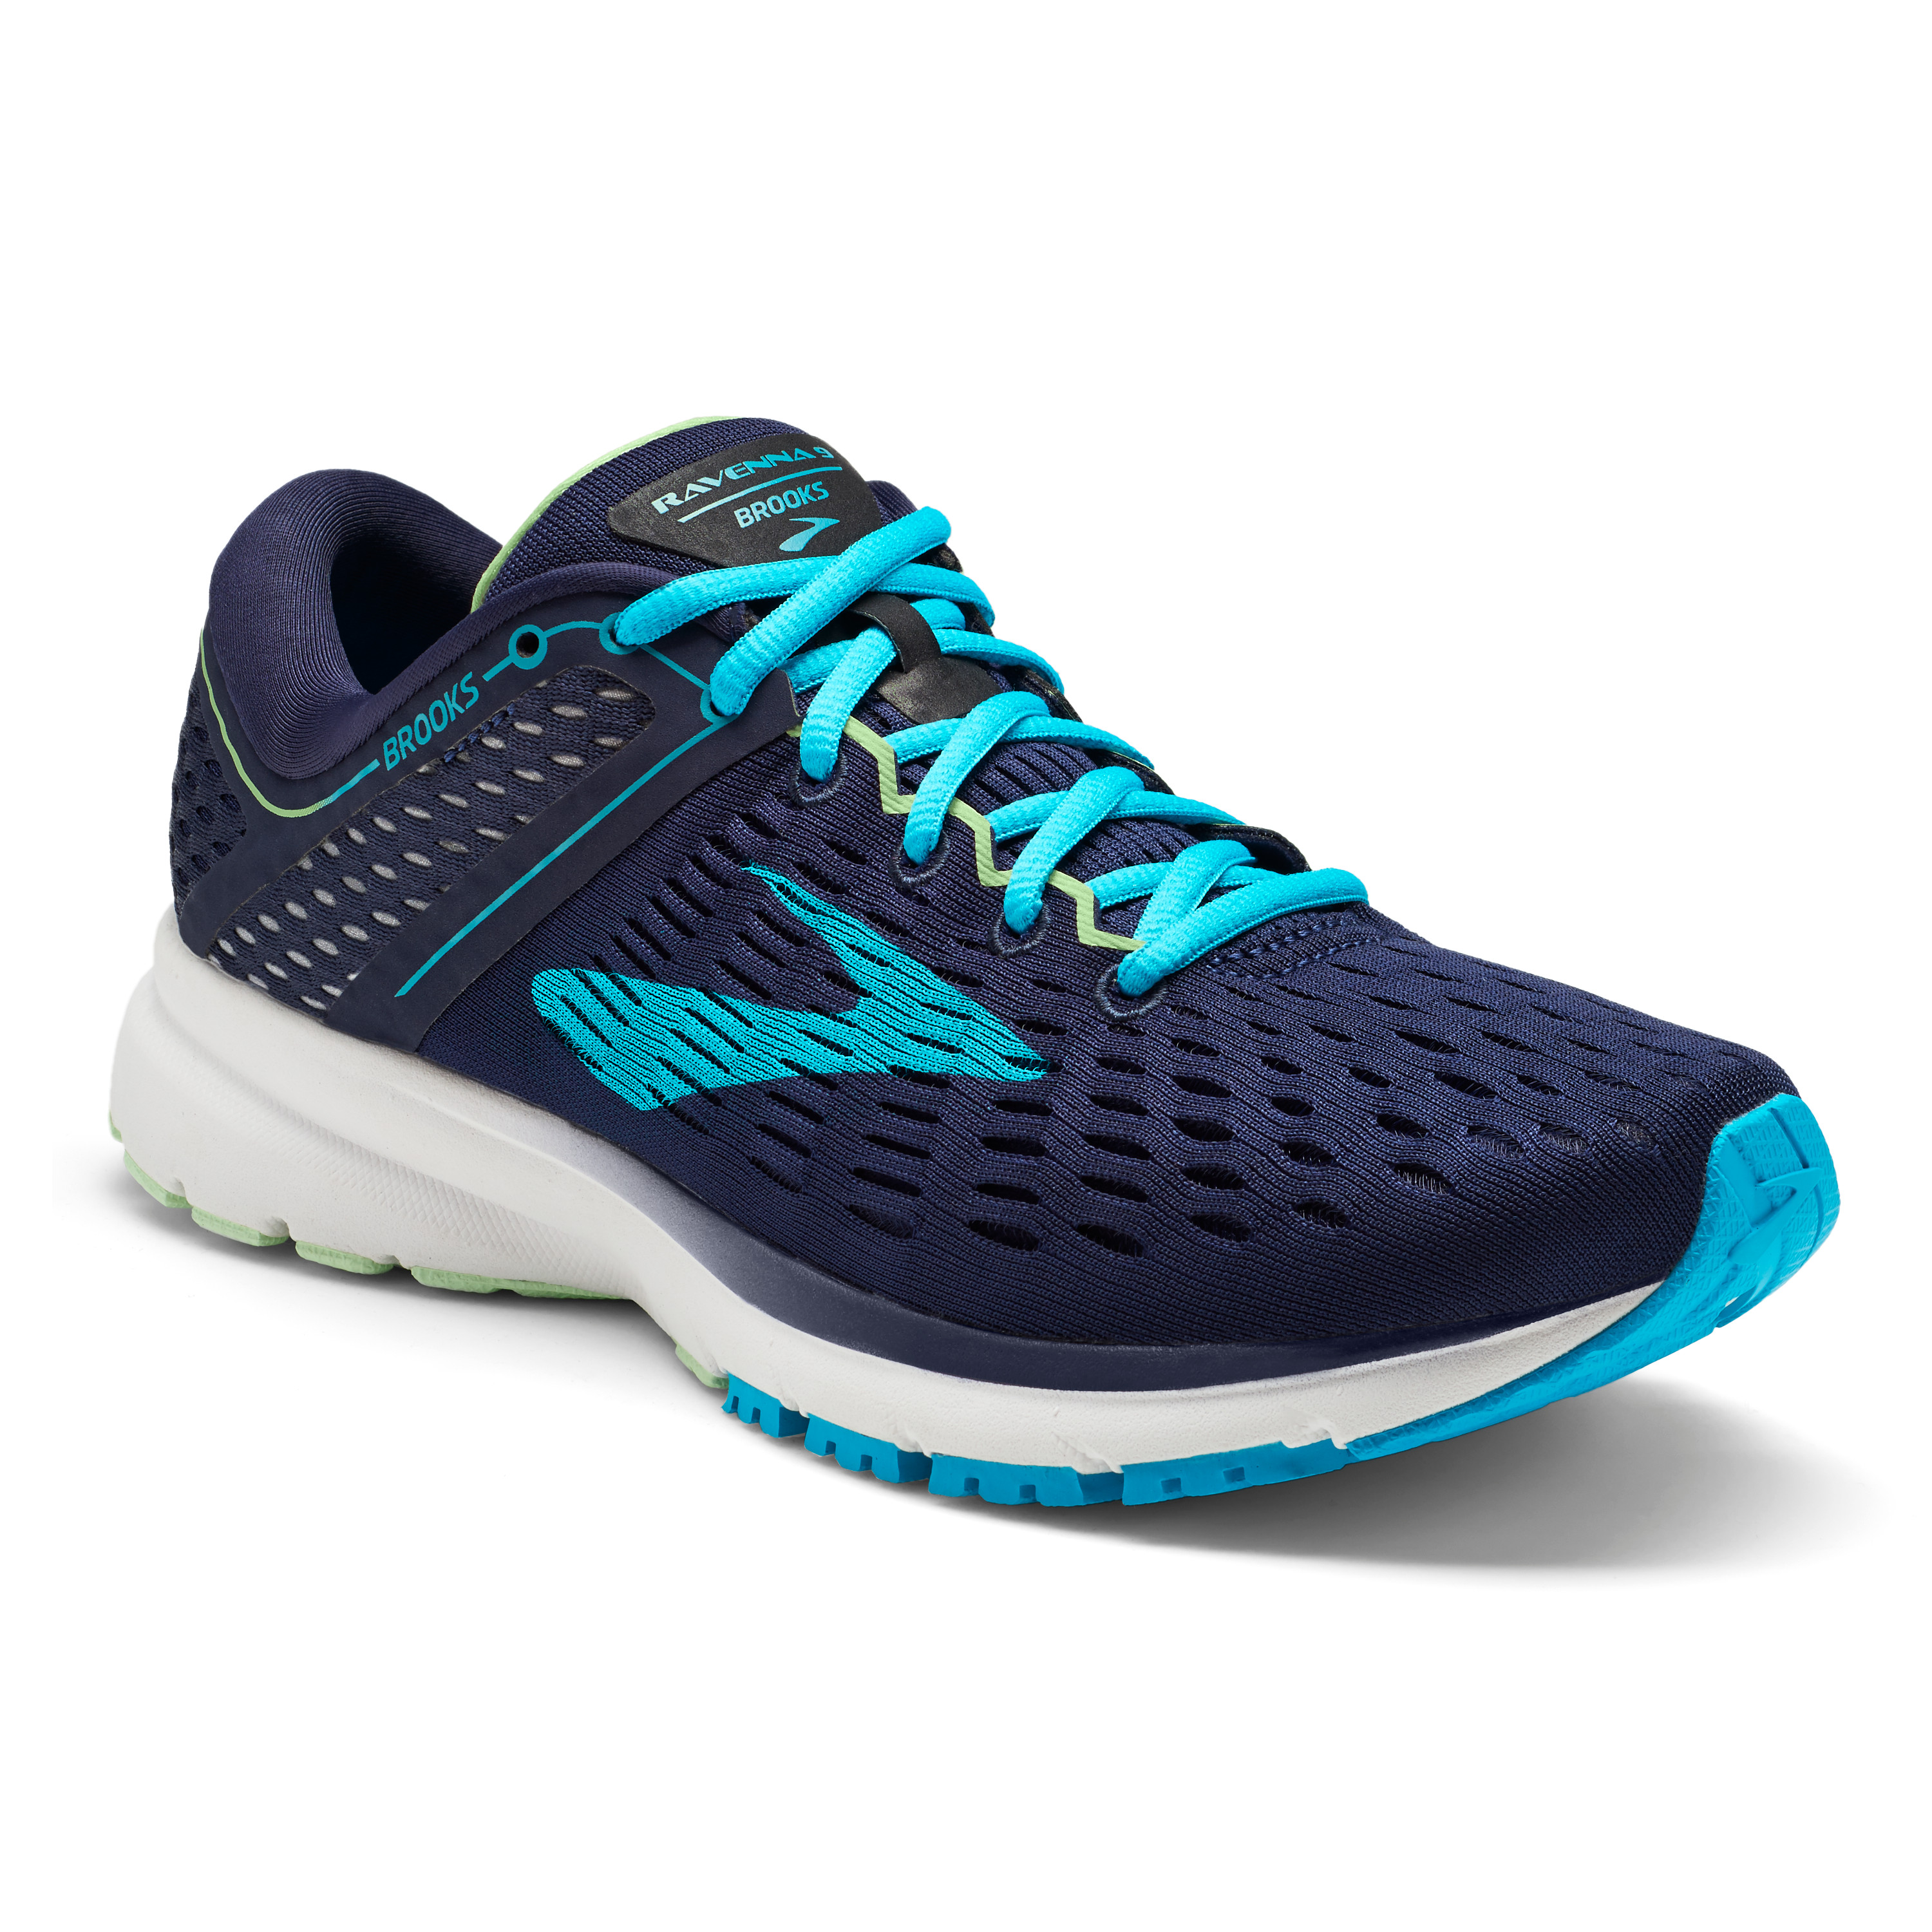 ce83401ca3ac4 Brooks Ravenna 9 Road Running Shoe - Women s